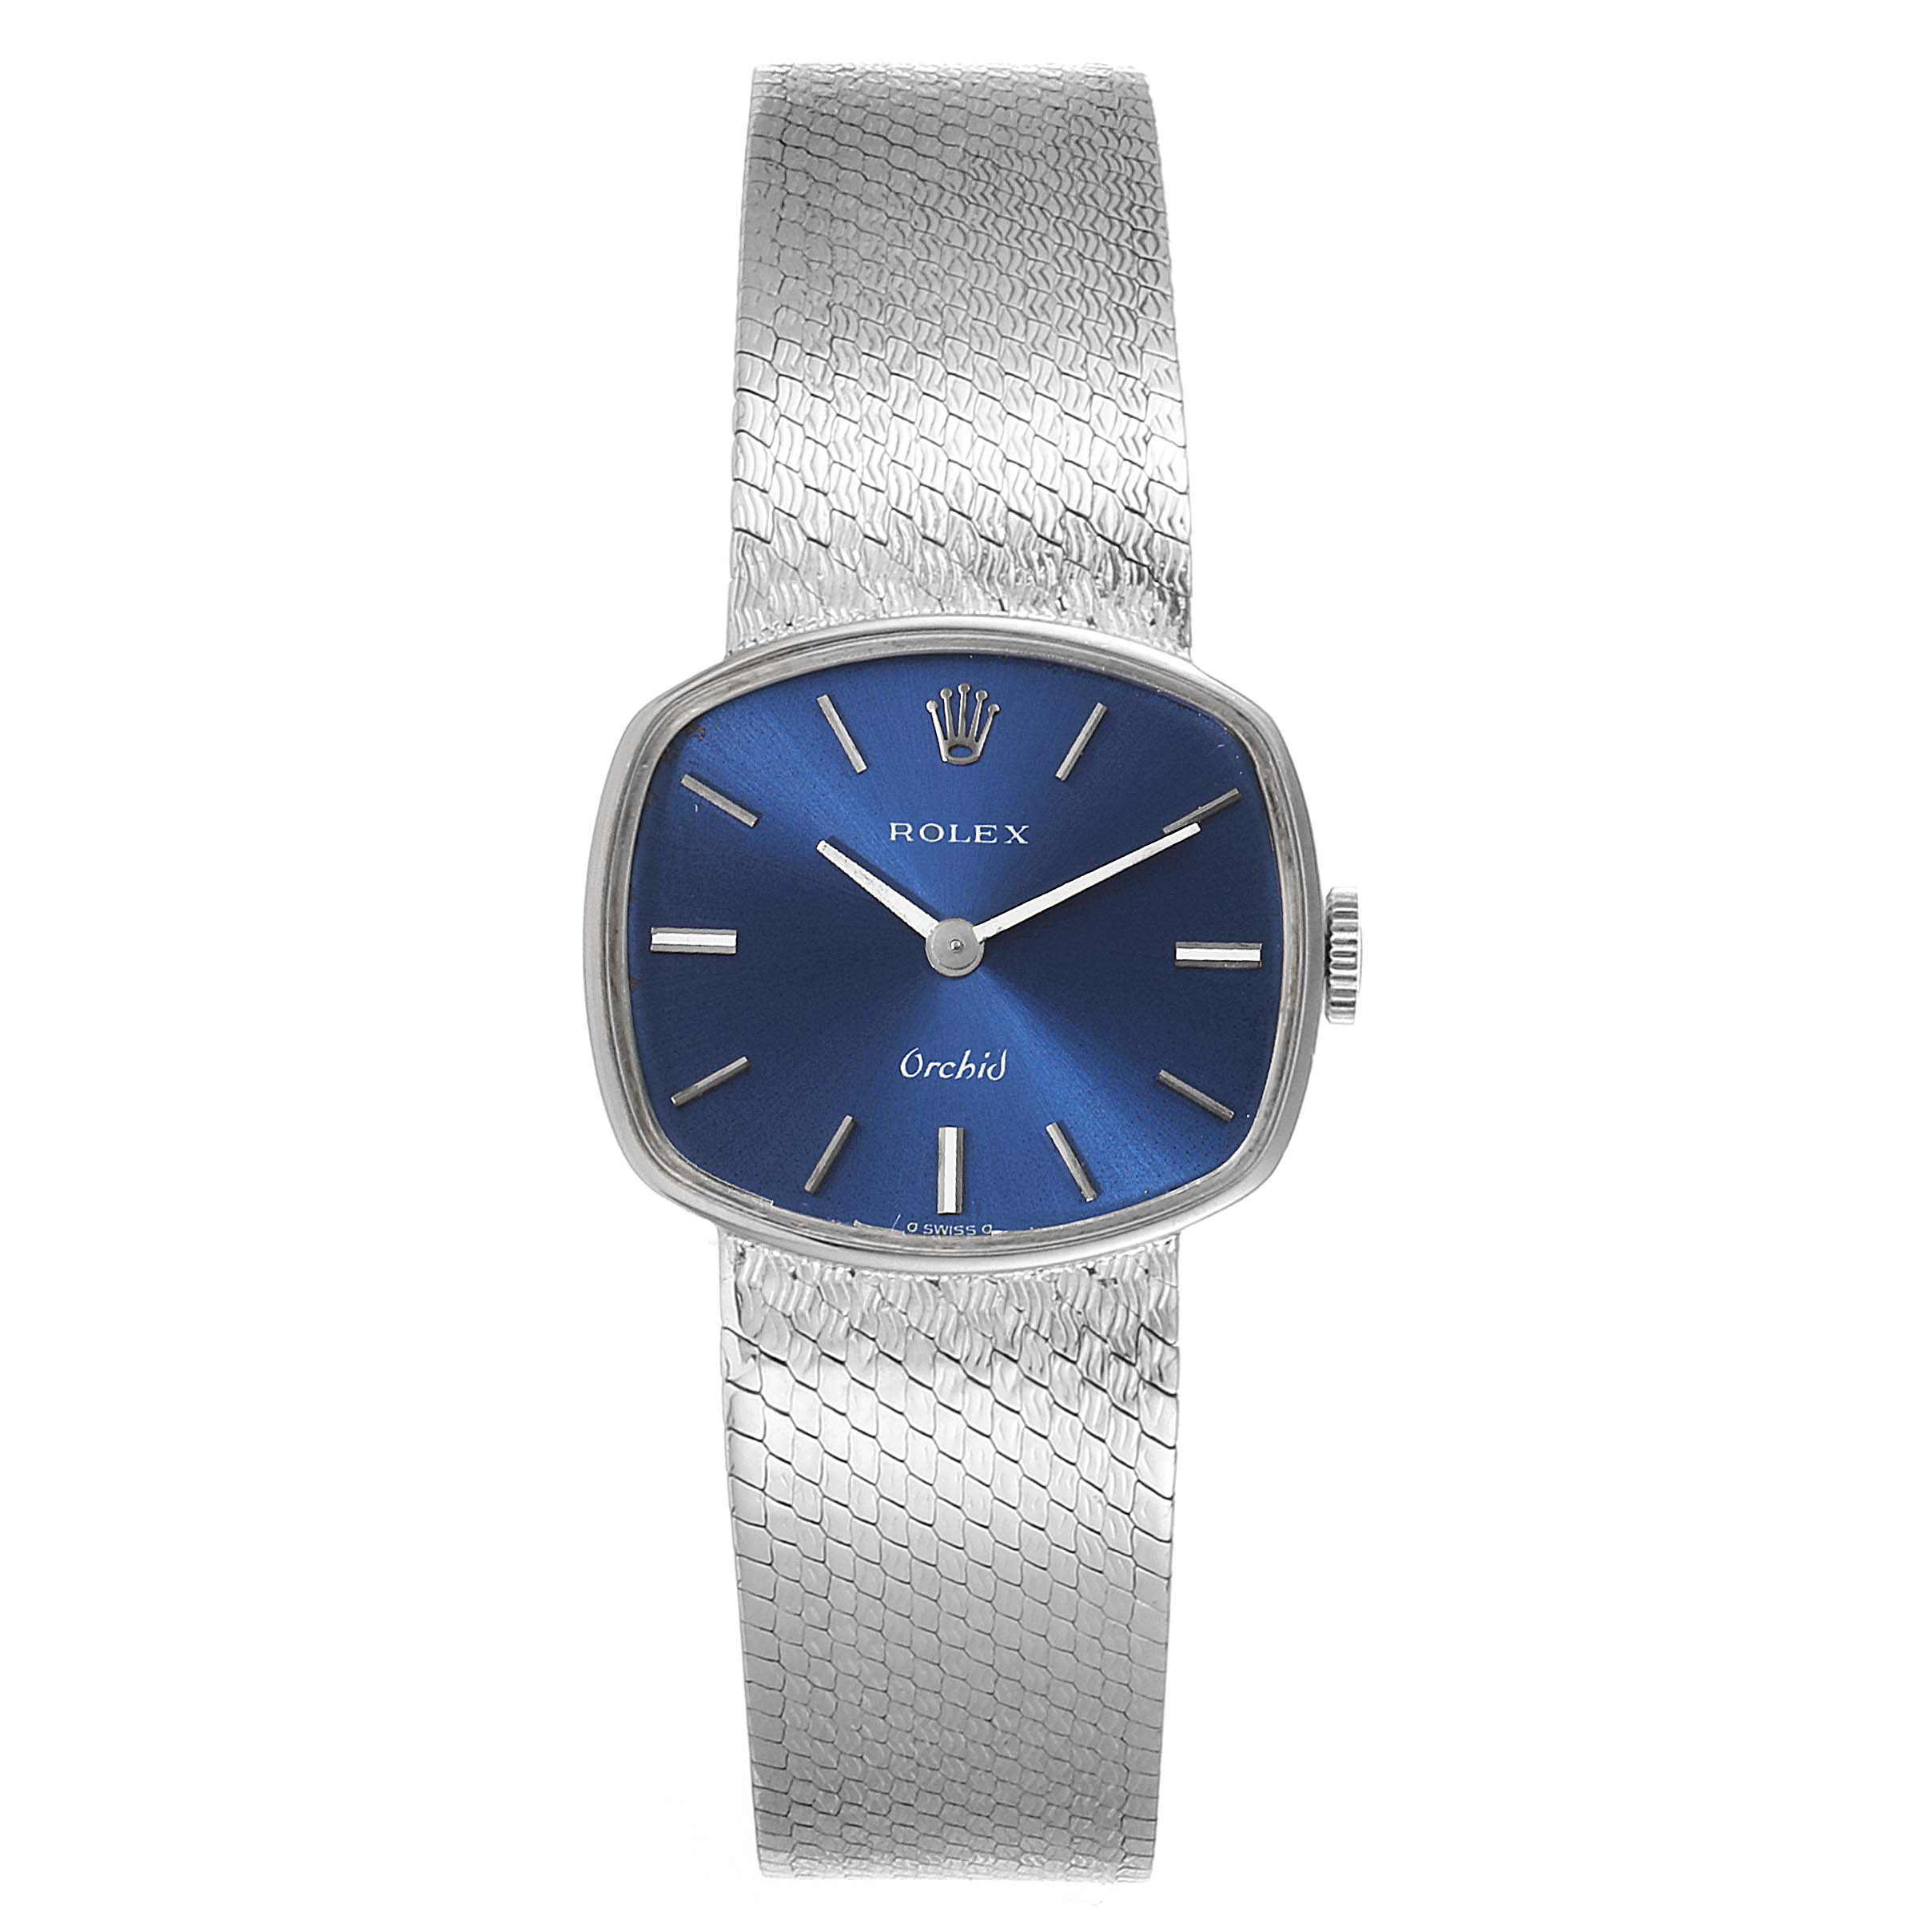 Rolex Orchid Blue Dial White Gold Vintage Cocktail Ladies Watch 2673 SwissWatchExpo